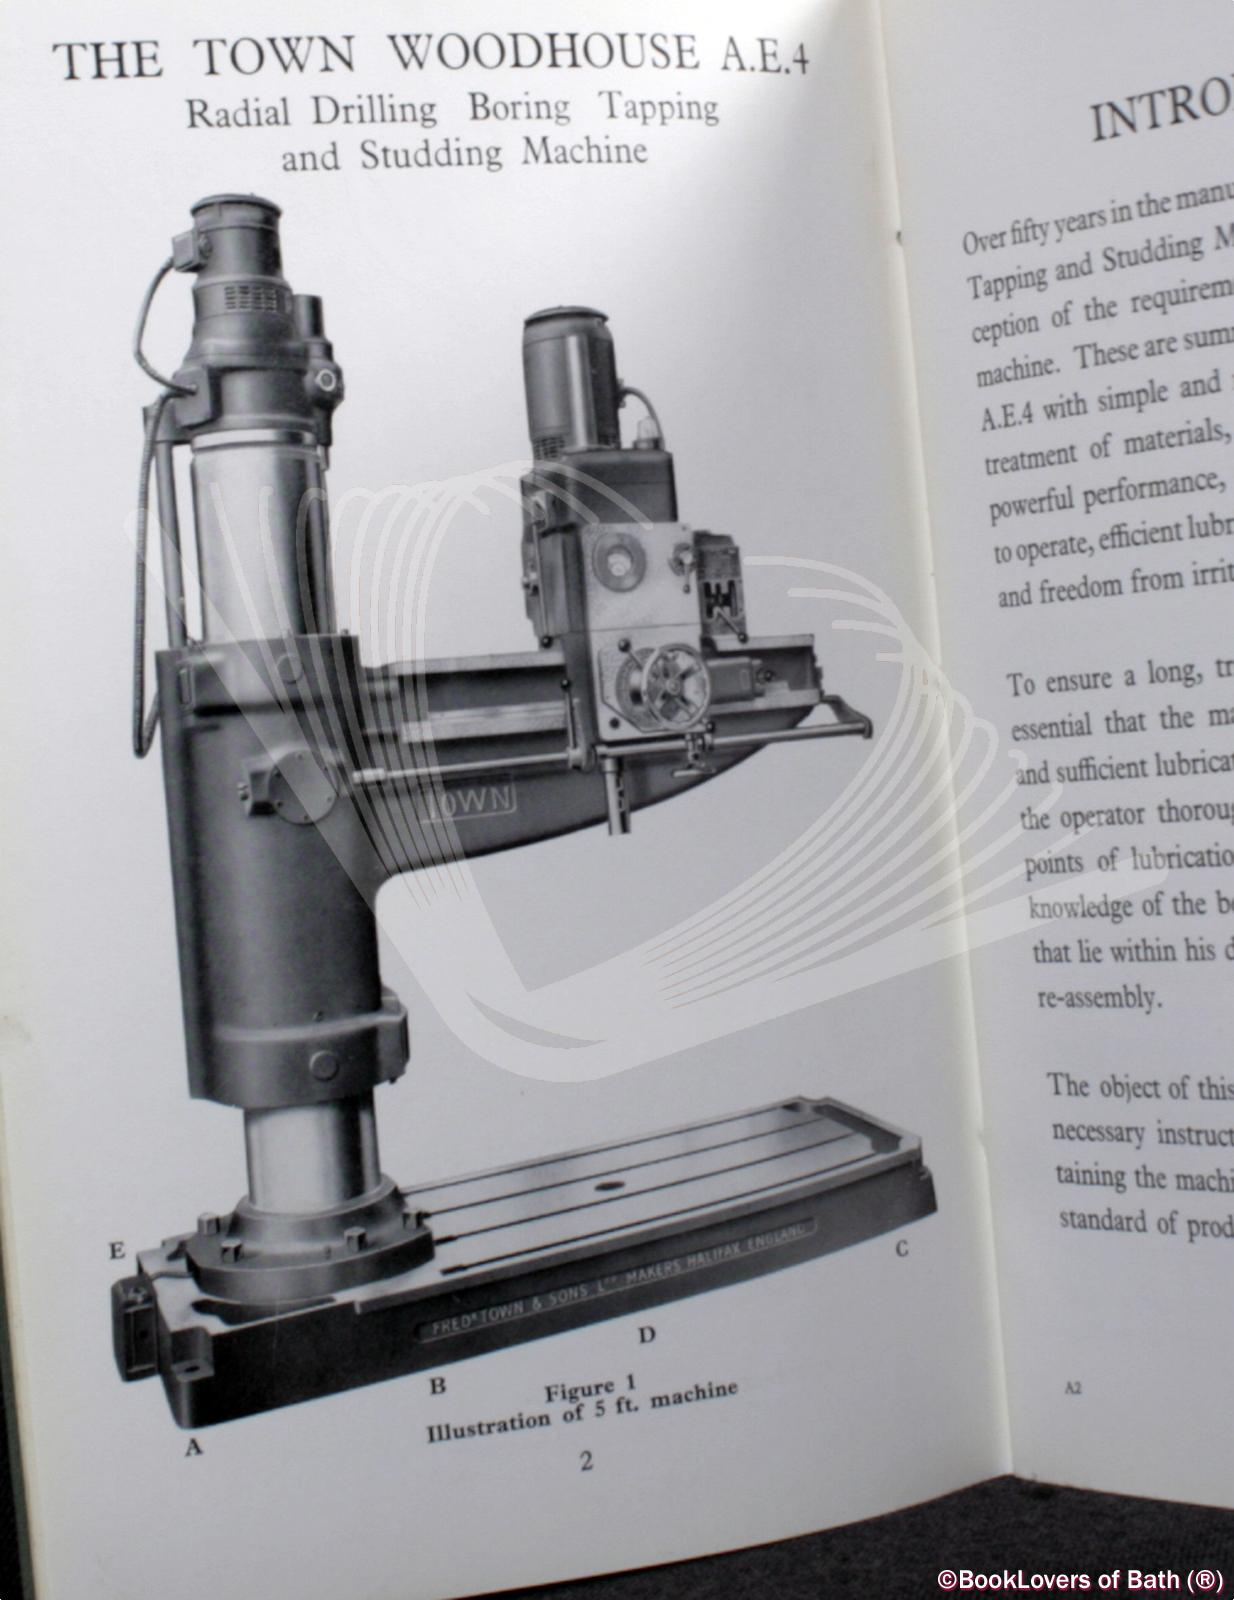 The Town Woodhouse A. E. 4 Radial Drilling, Boring, Tapping and Studding Machine Operating and Maintenance Instructions - Anon.